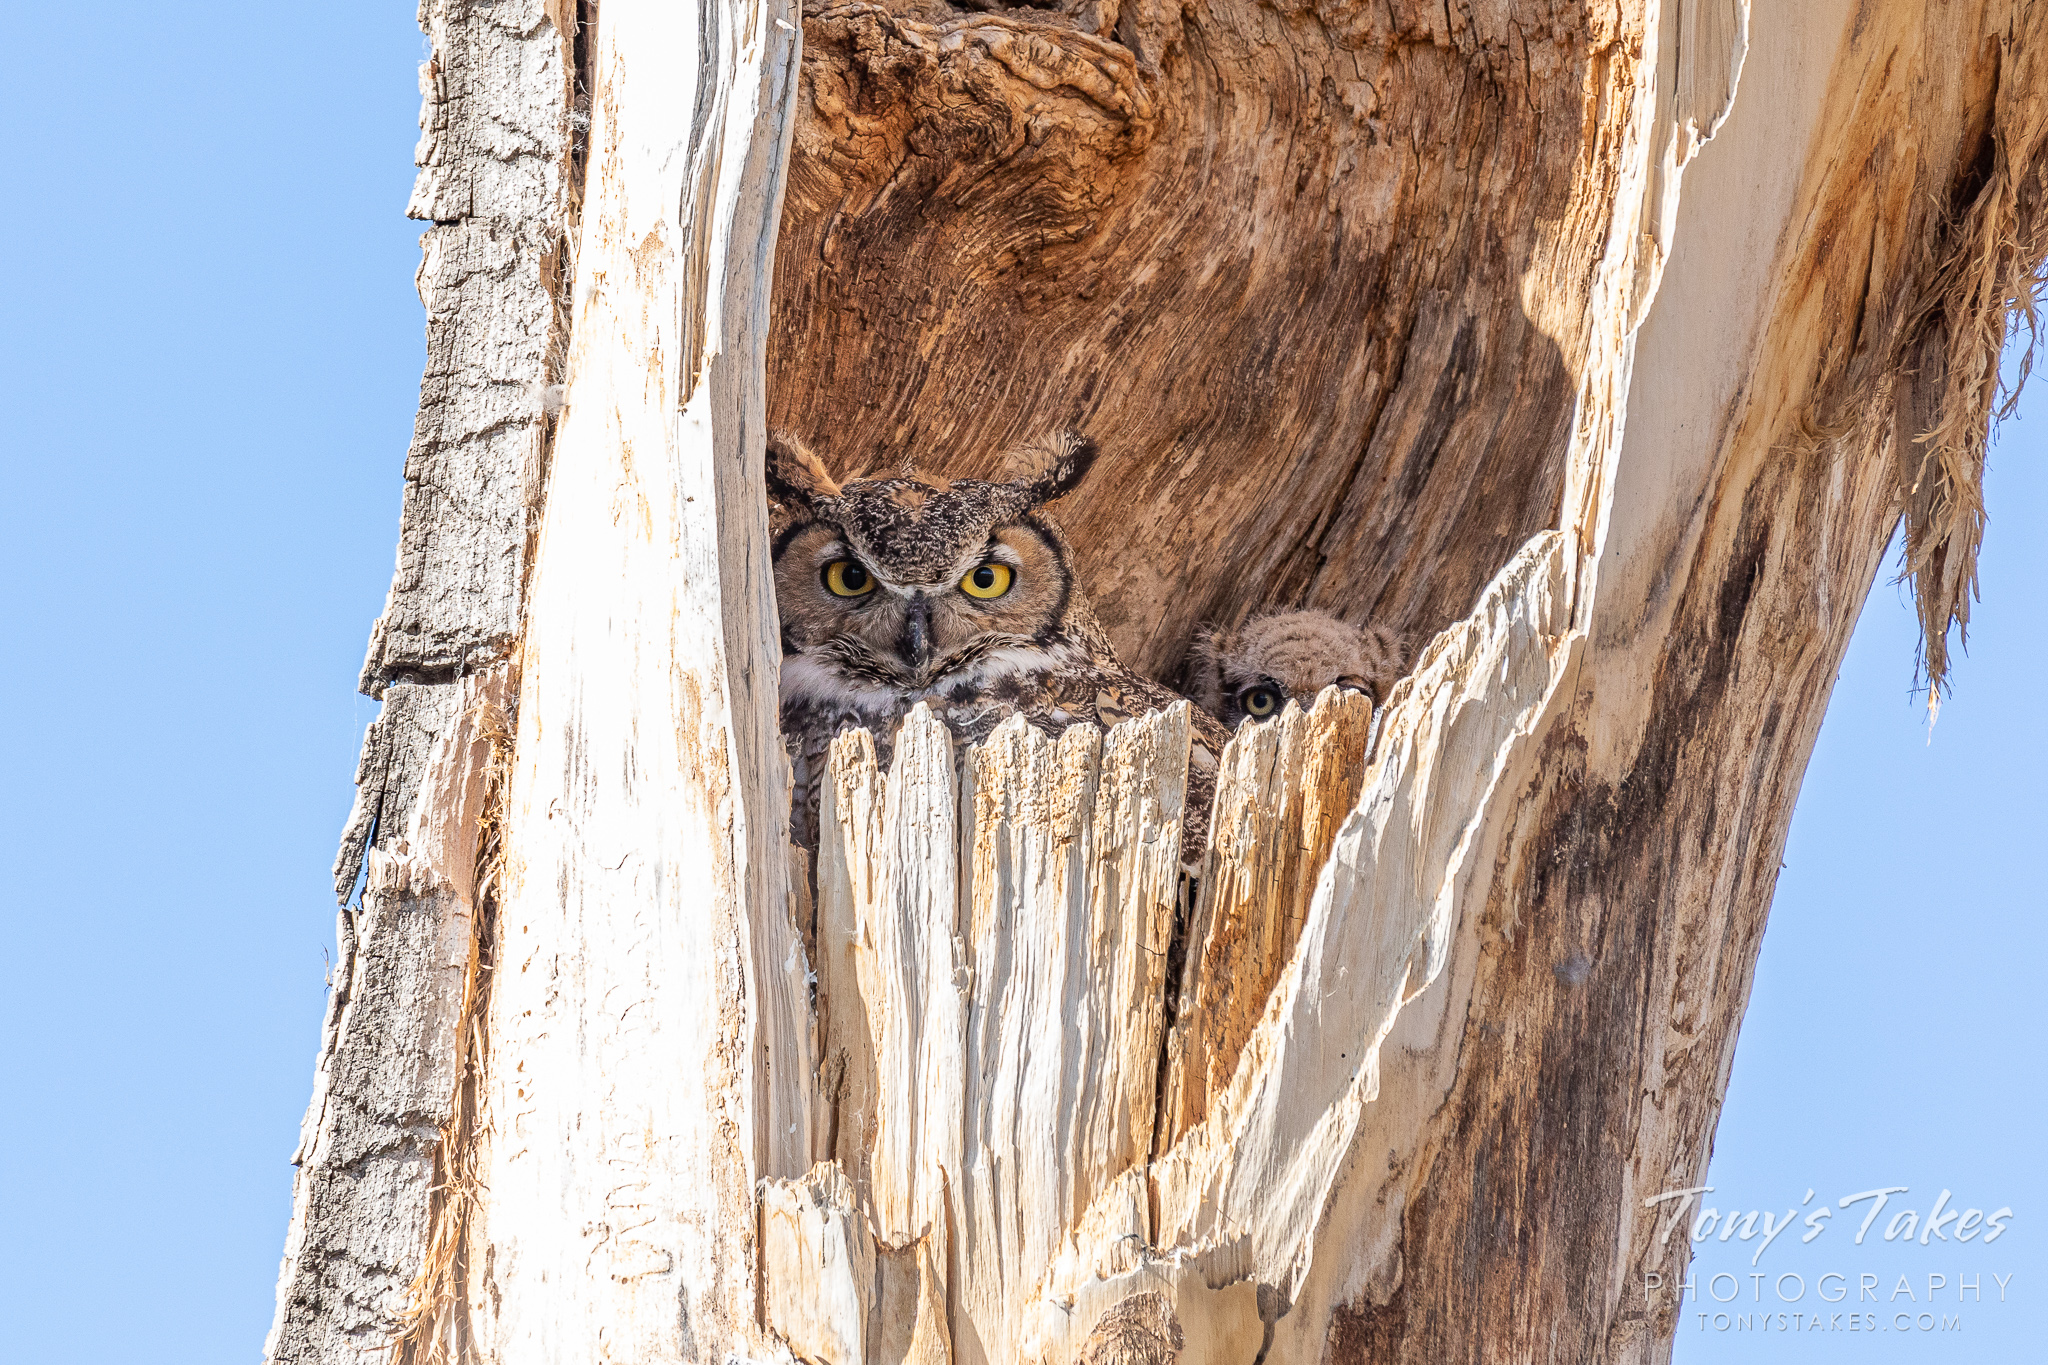 First owlets of the season